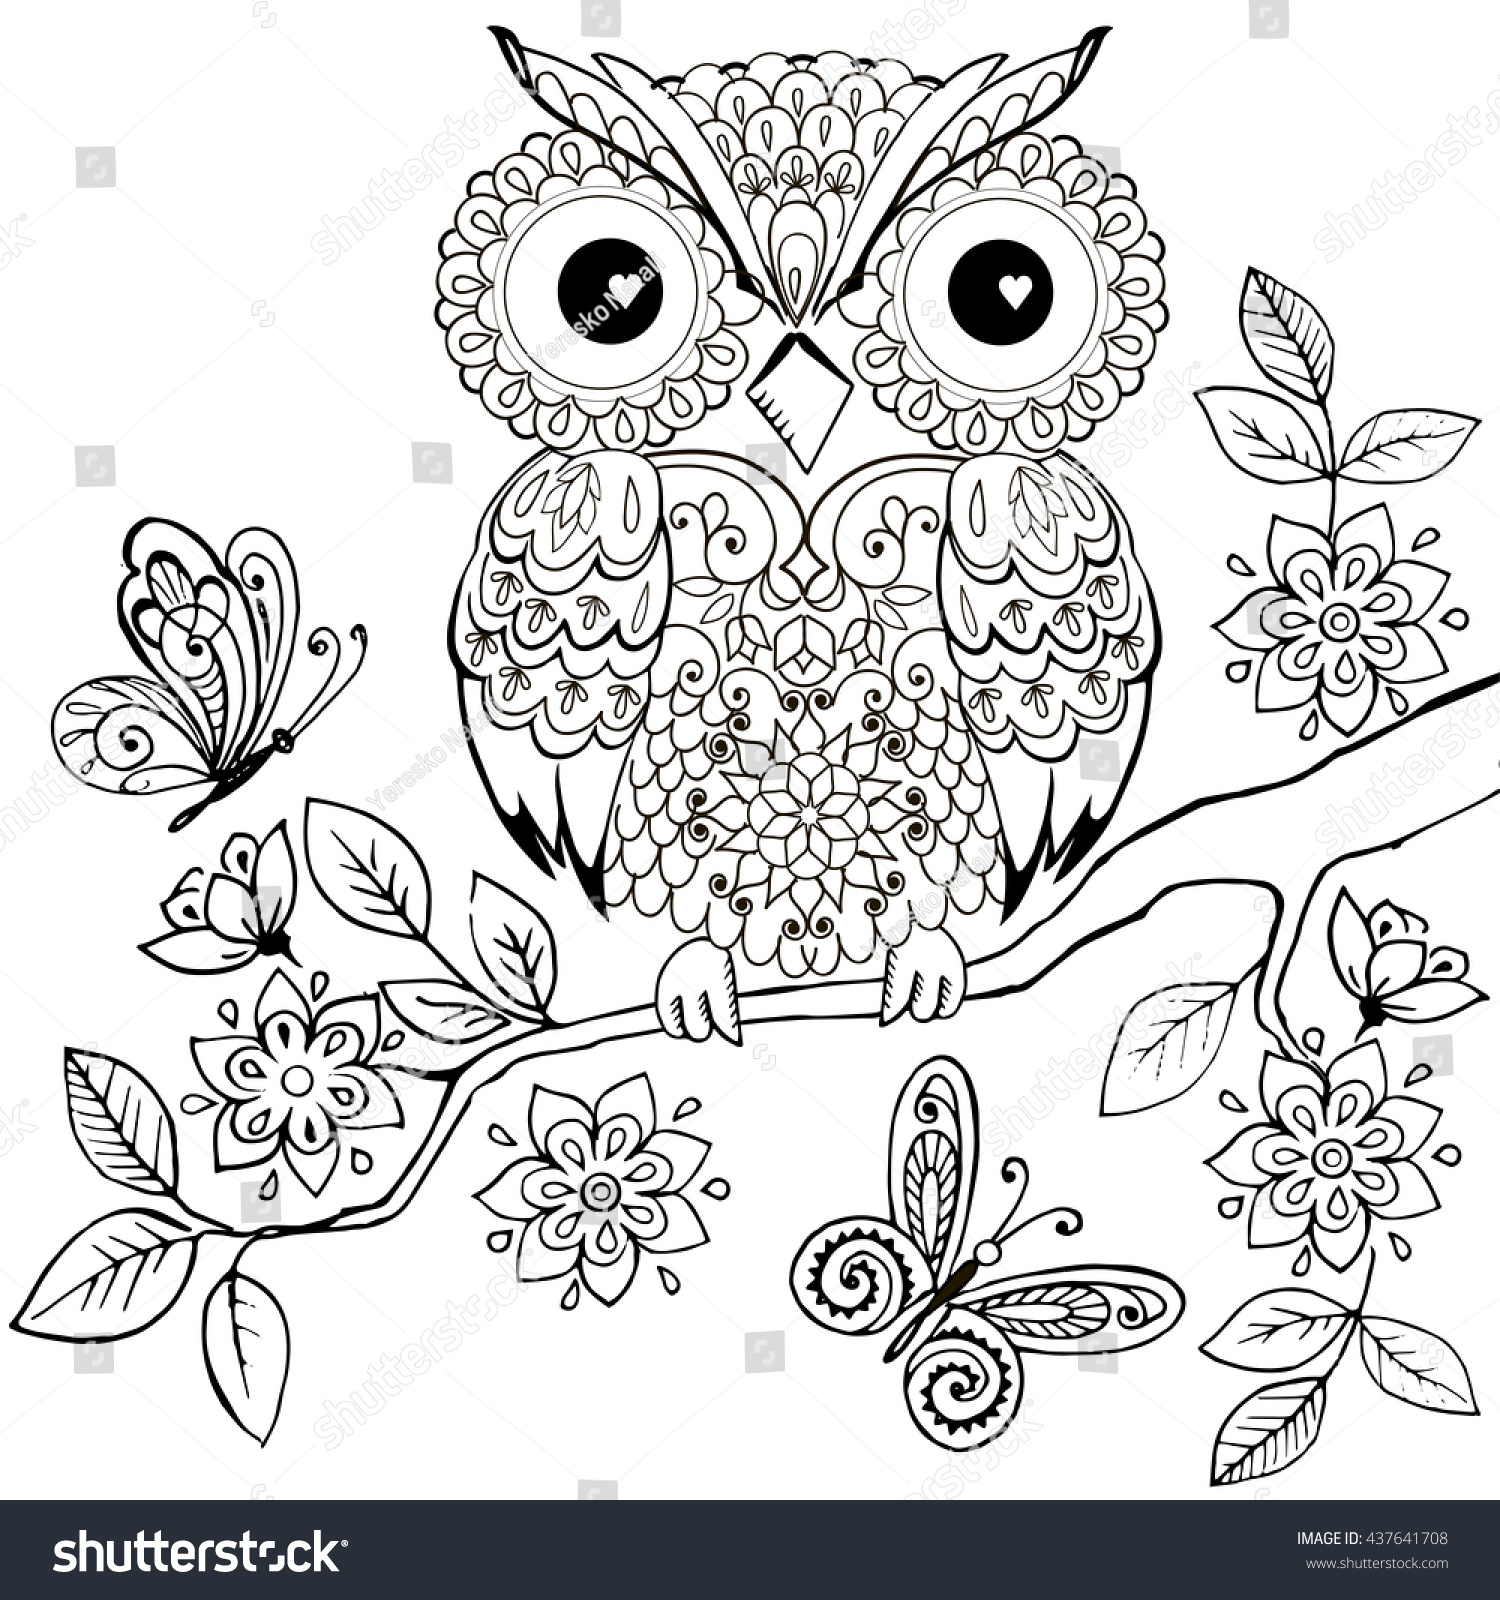 Decorative Owl On A Flowering Branch Coloring Book For Adults Hand Drawn